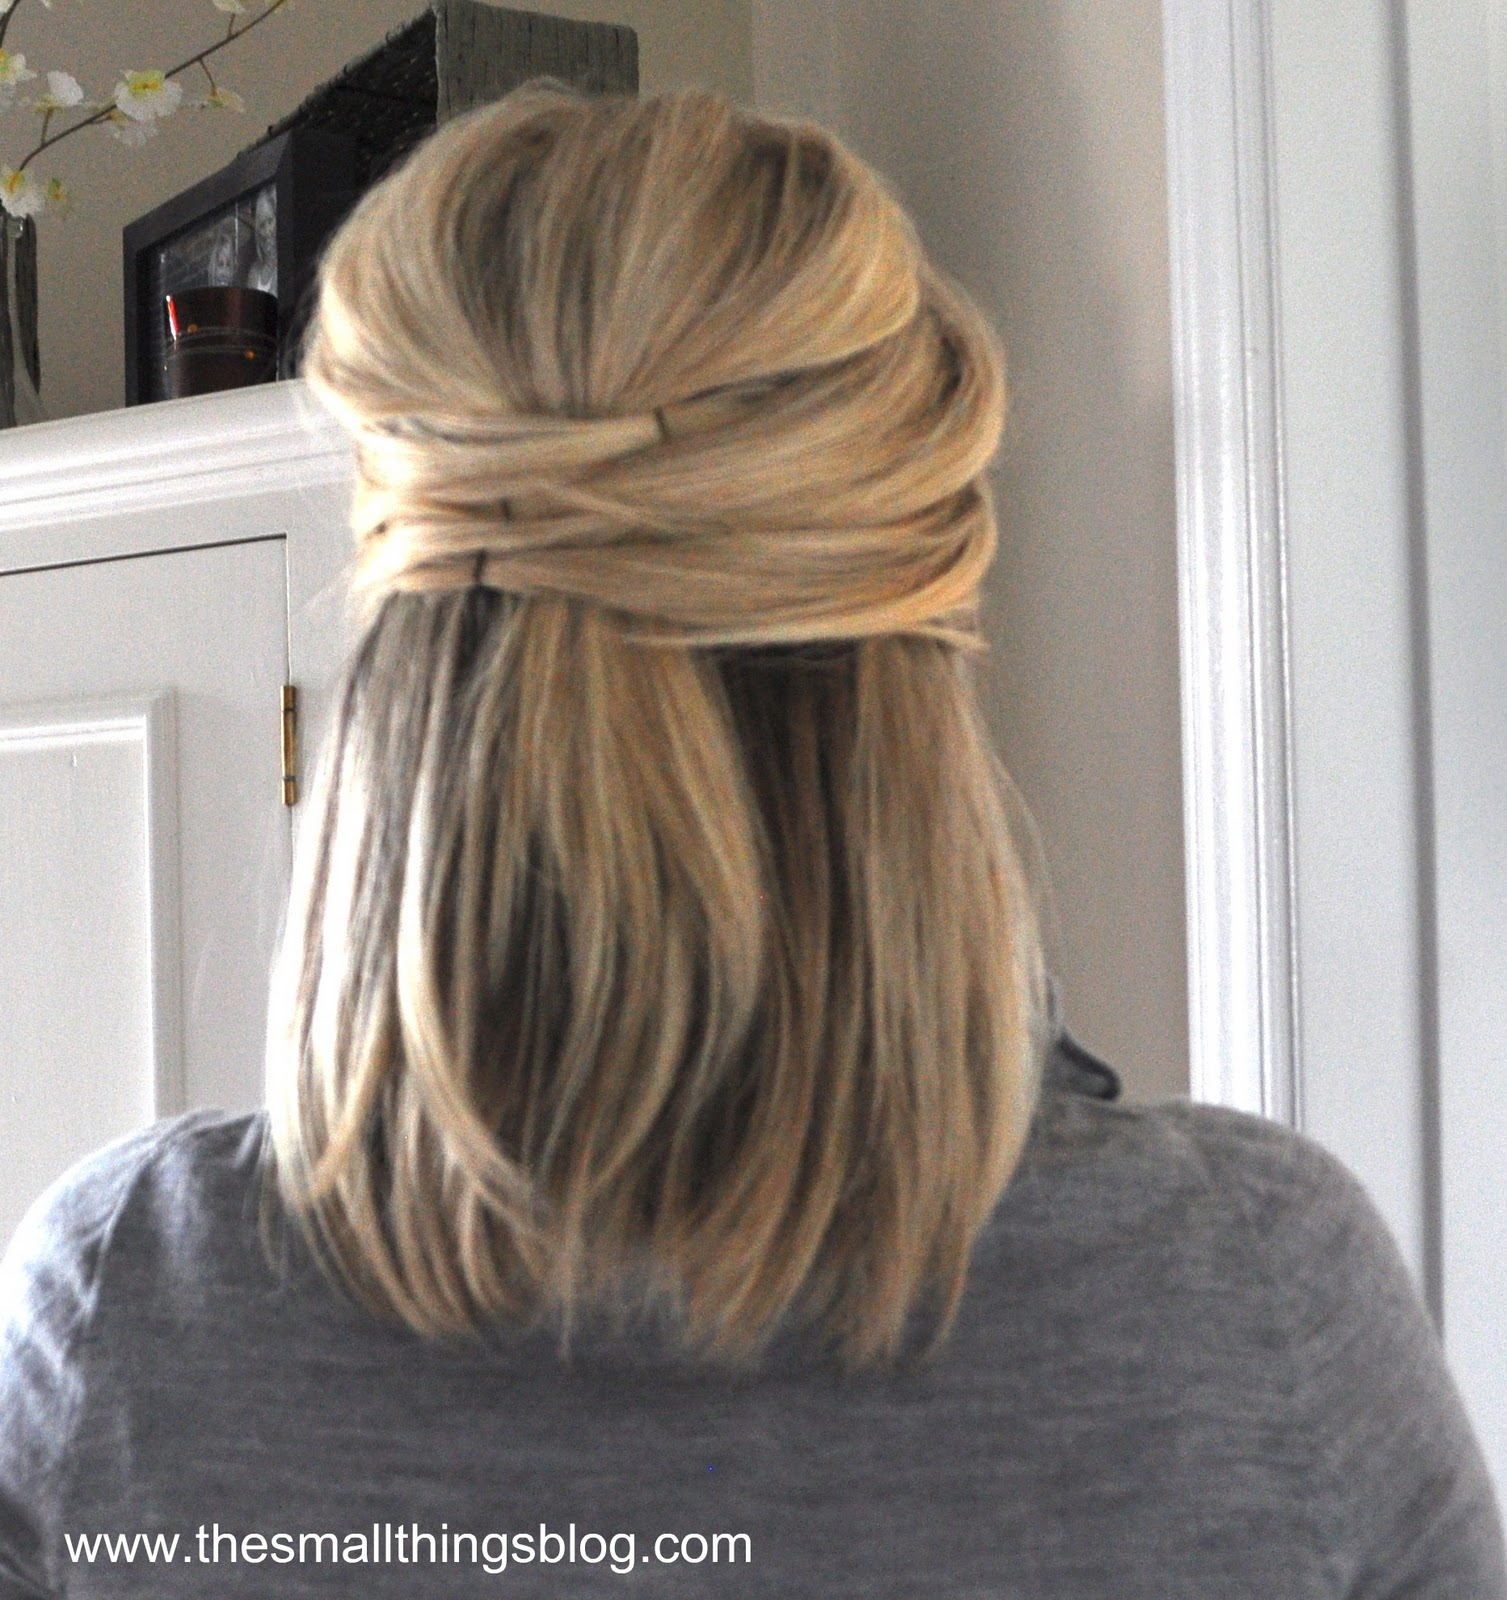 Half Up Wedding Hair Ideas: The Small Things Blog